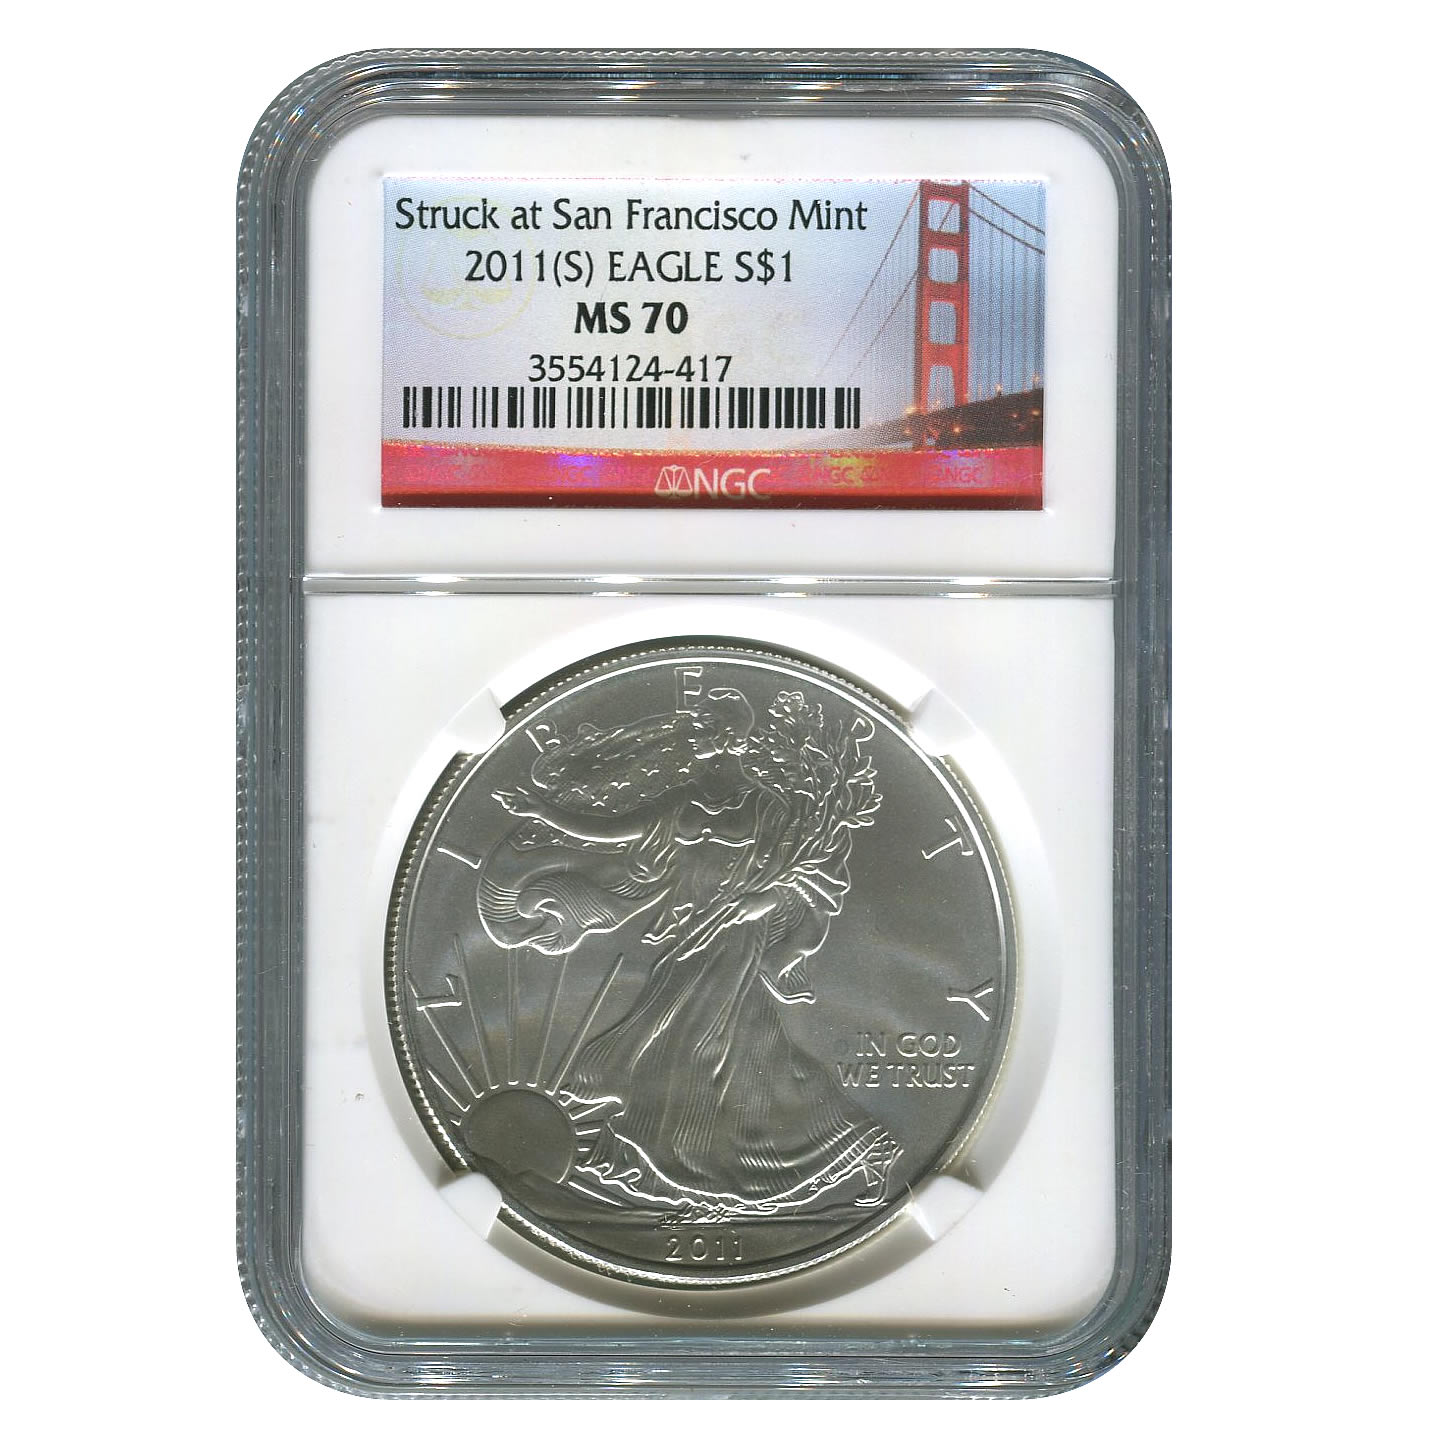 Certified Uncirculated Silver Eagle 2011 San Francisco